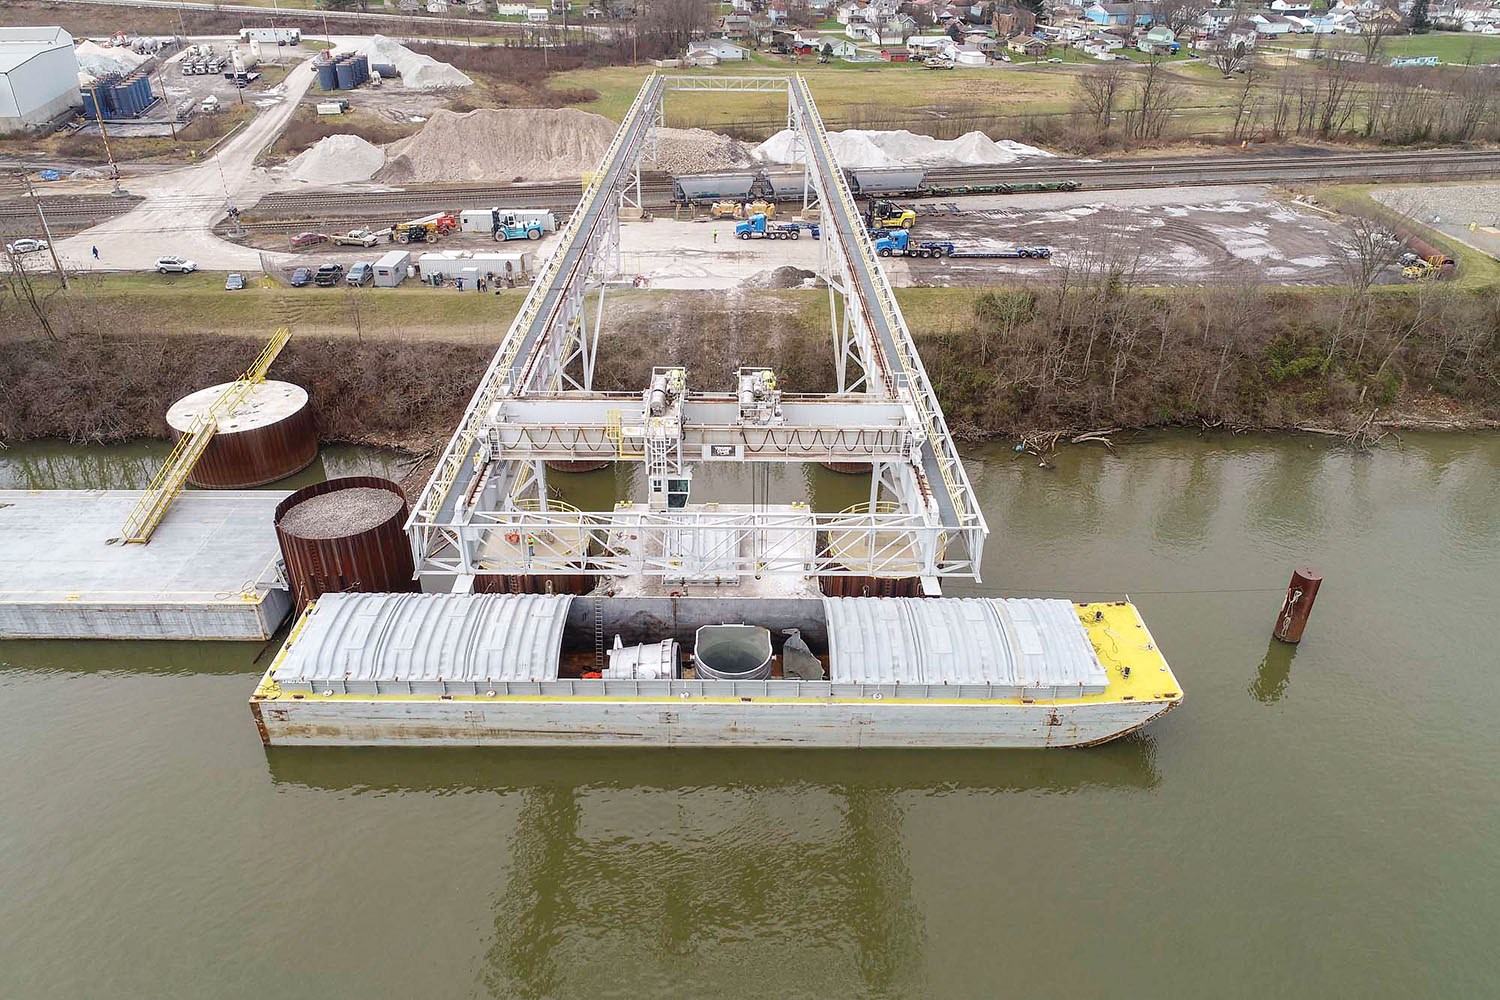 Once the ladles arrived in the United States from China, the vessel carrying them took 21 days to reach the Wellsville Intermodal Facility from New Orleans.(Photo courtesy of Columbiana County Port Authority)